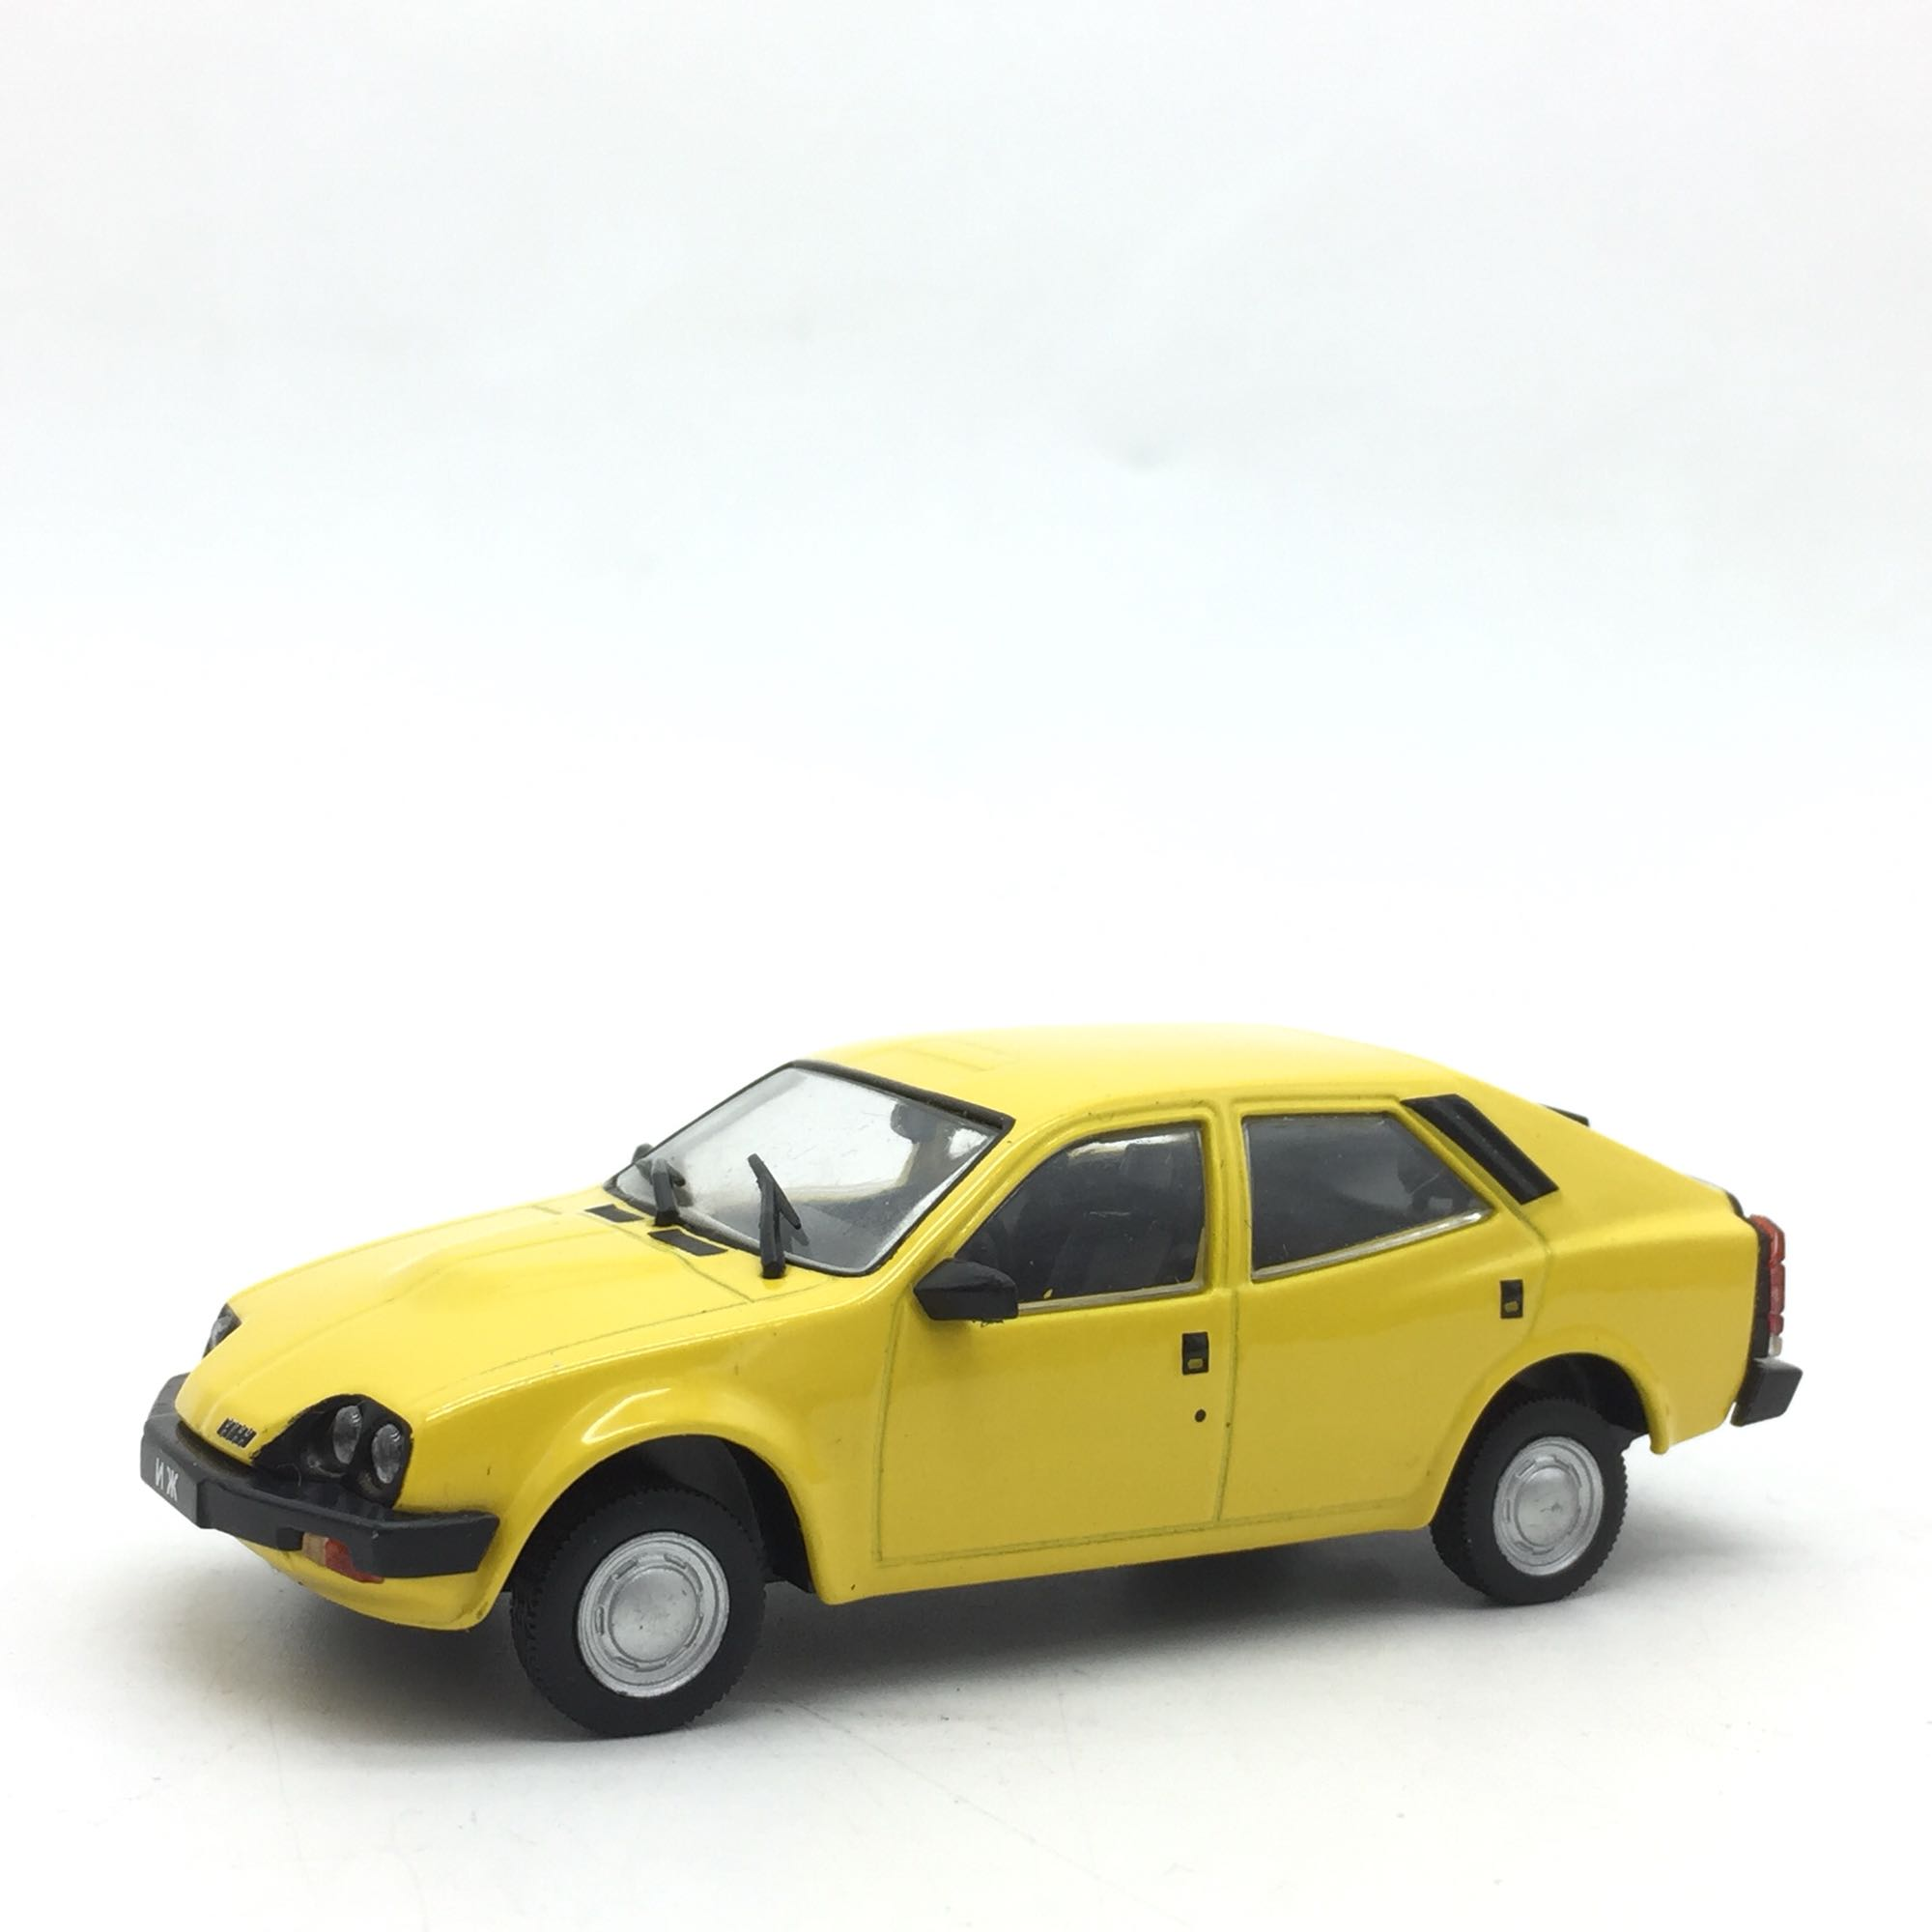 1:43 Soviet Alloy Car Model Collection Model Car For Gift 10cm Free Shipping